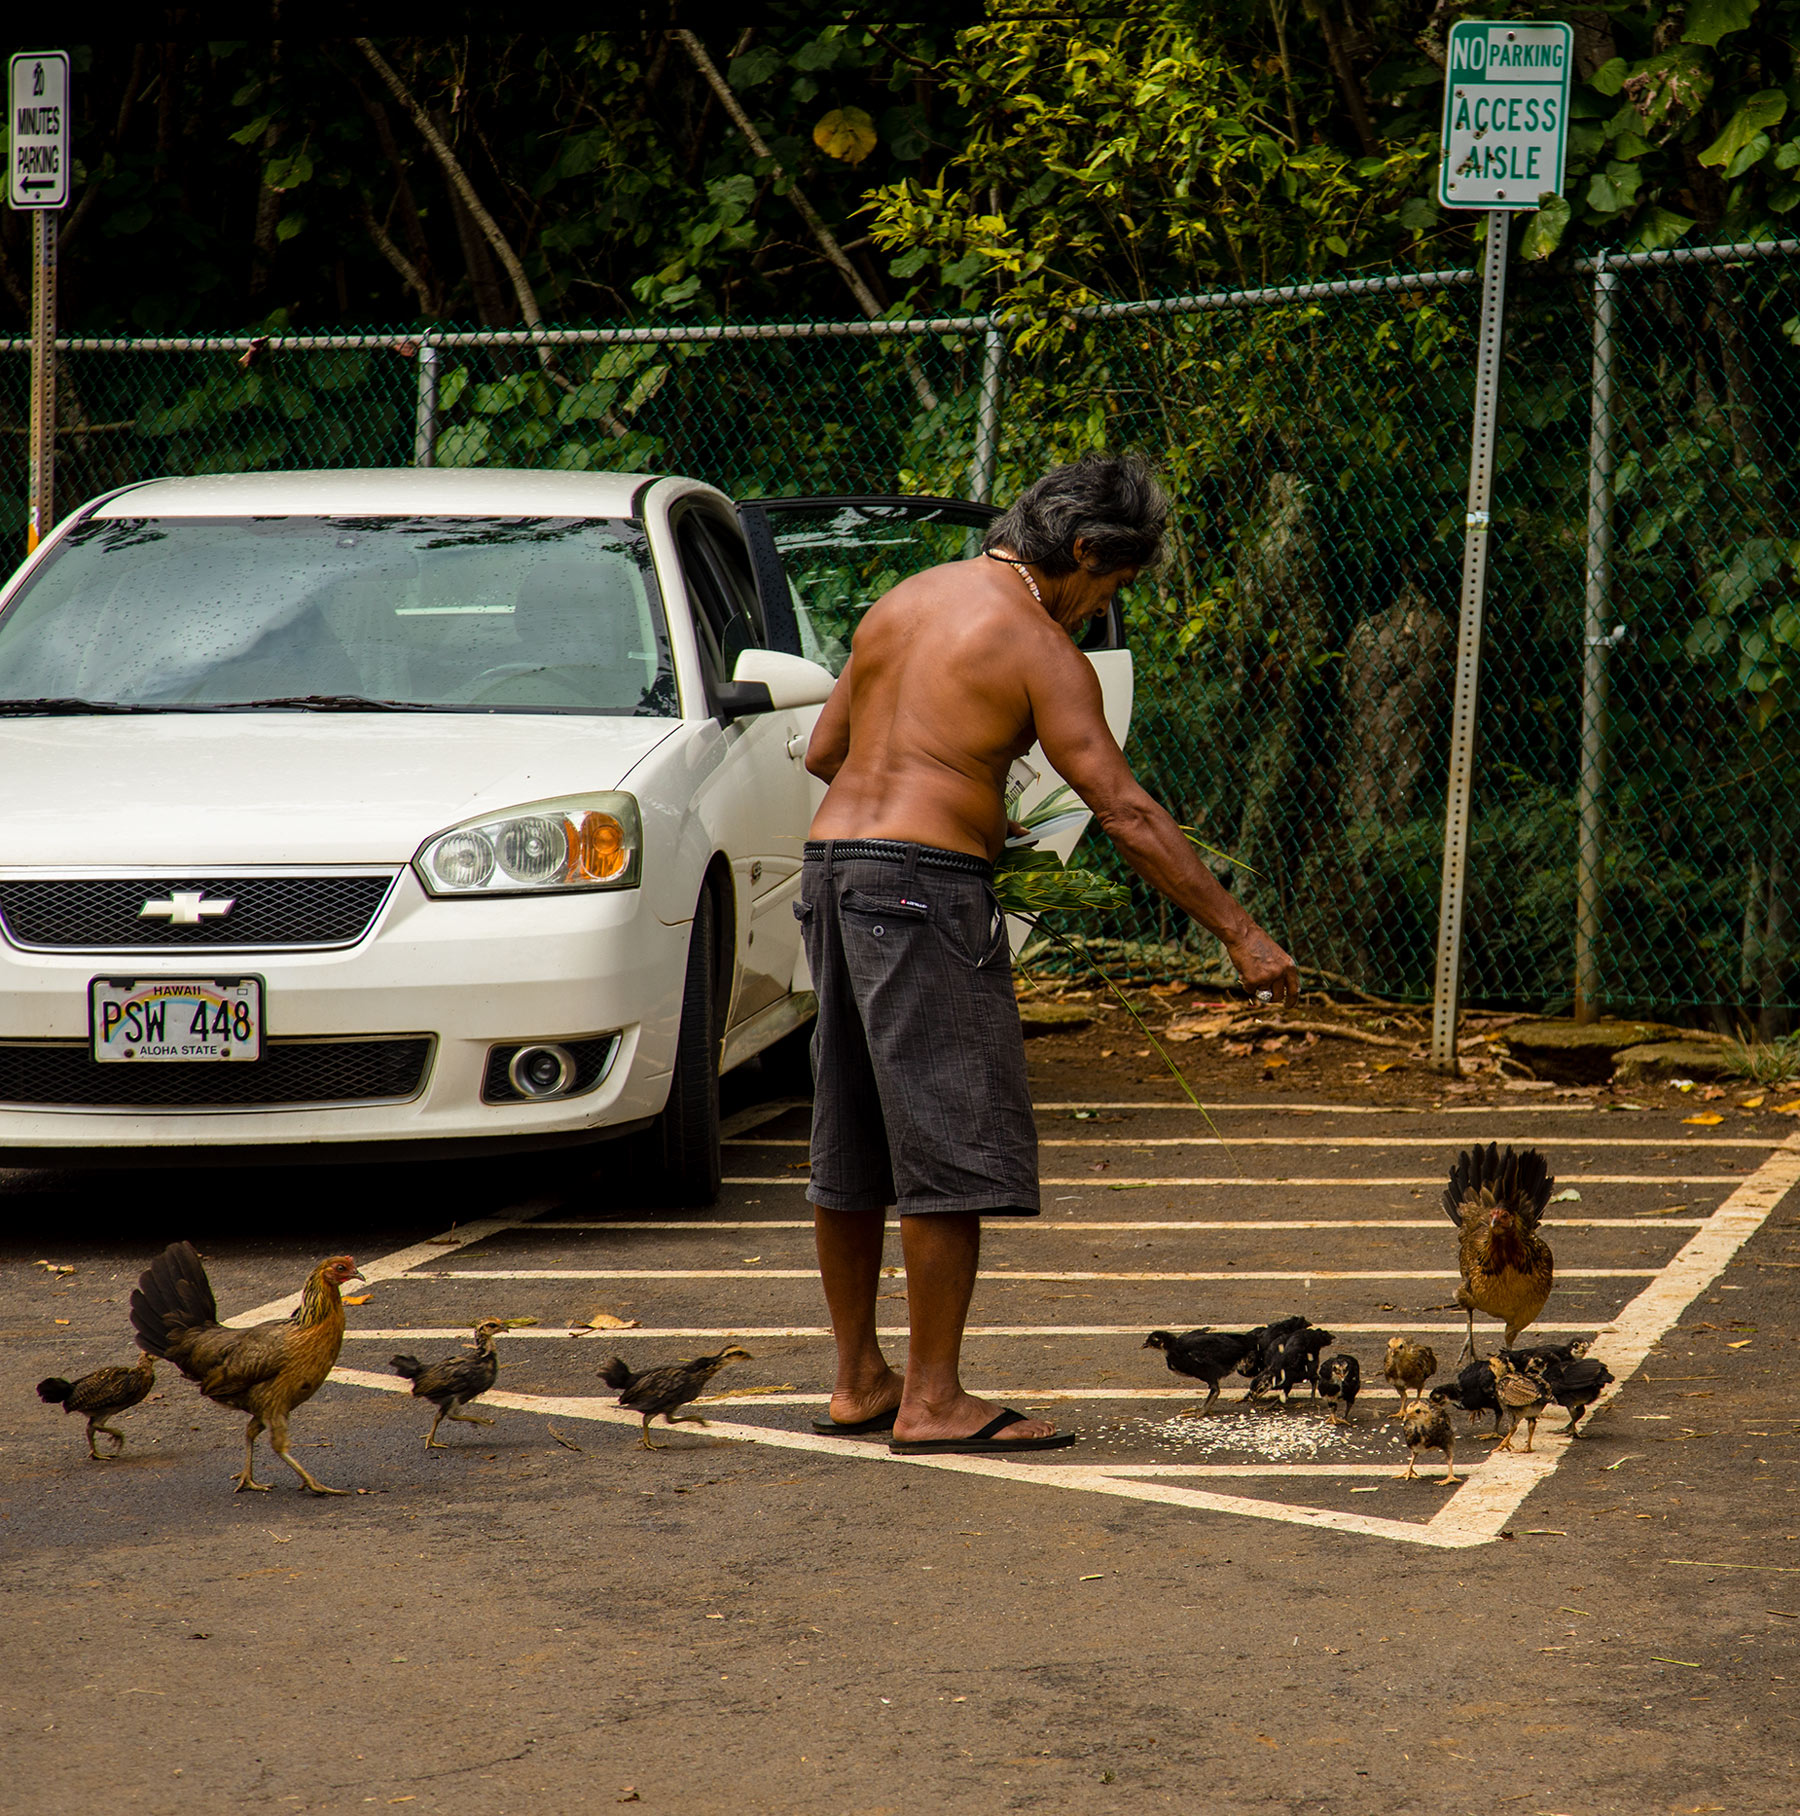 Chickens and Rusters in Kauai. Feeding